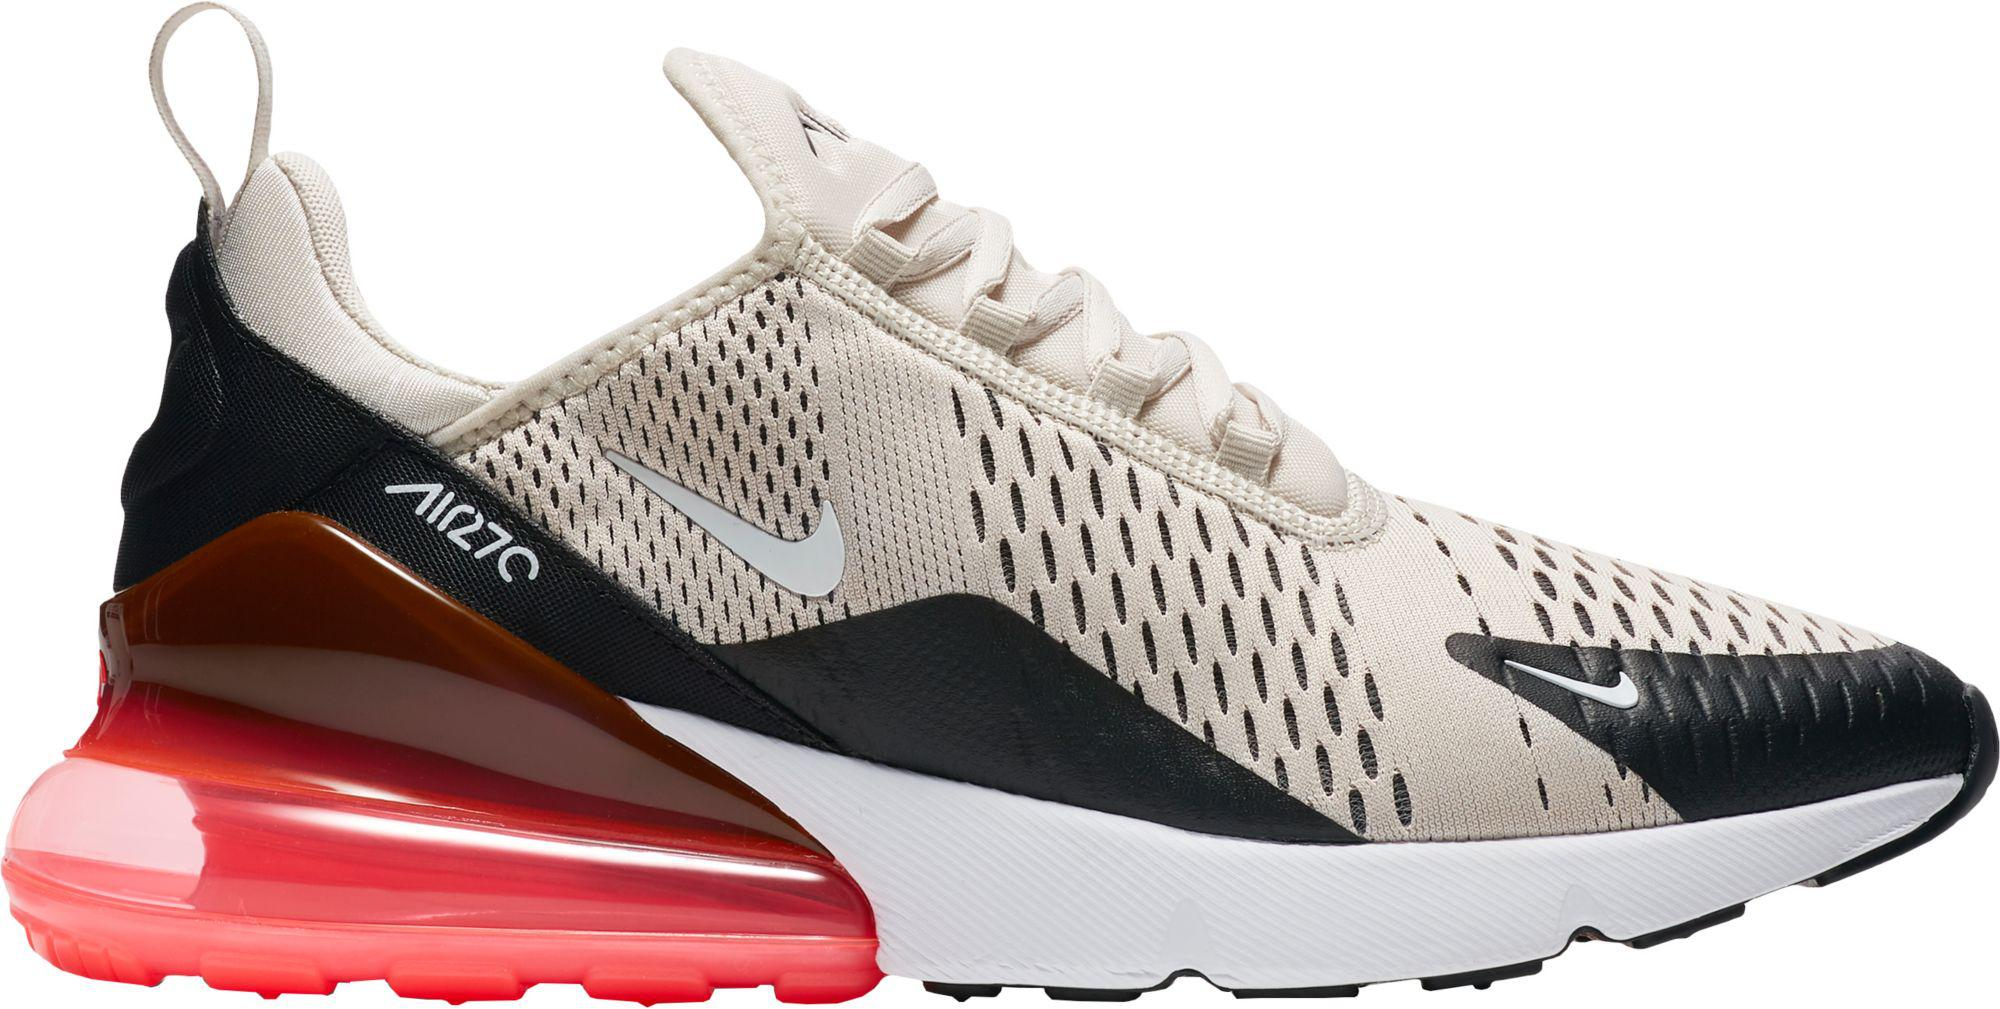 new concept 0327a 413e0 Nike - Multicolor Air Max 270 Shoes for Men - Lyst